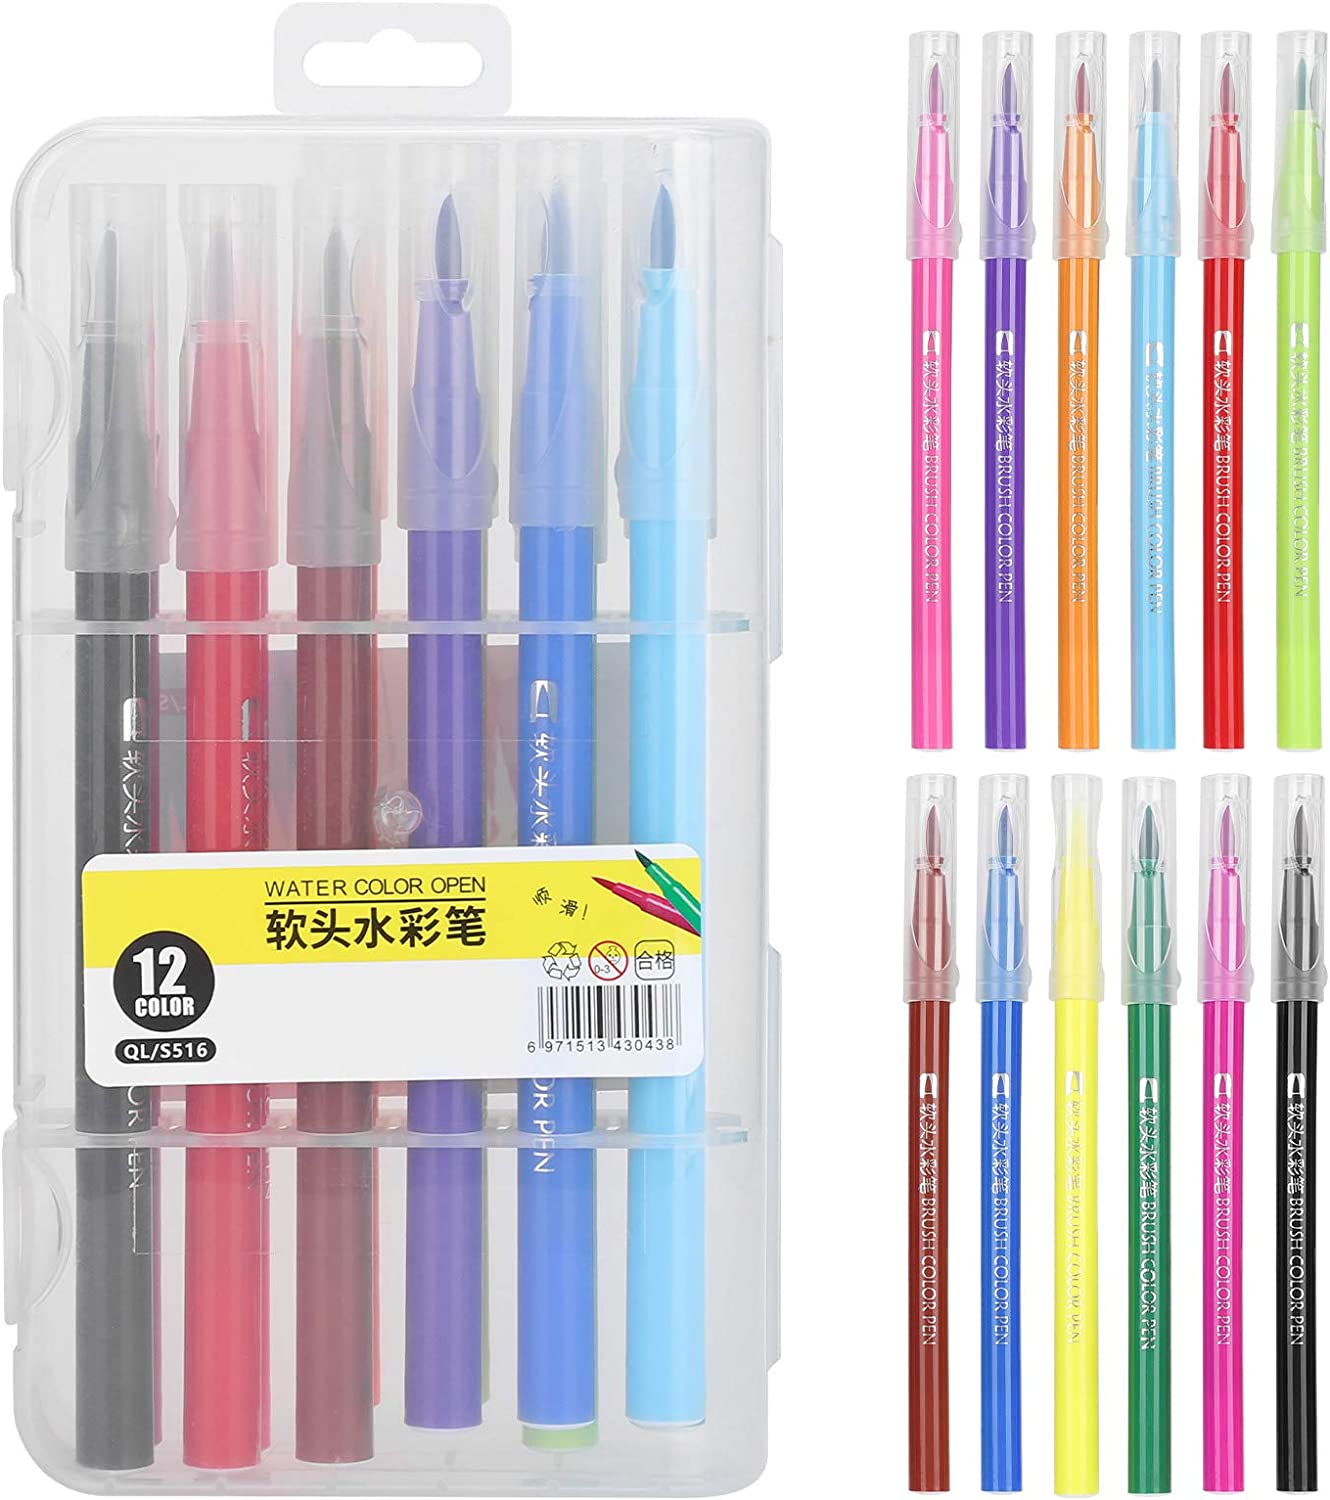 Challenge the lowest price 2 Set Watercolor Painting Pen with Nylon Animer and price revision Brush Flexible Tips Pai